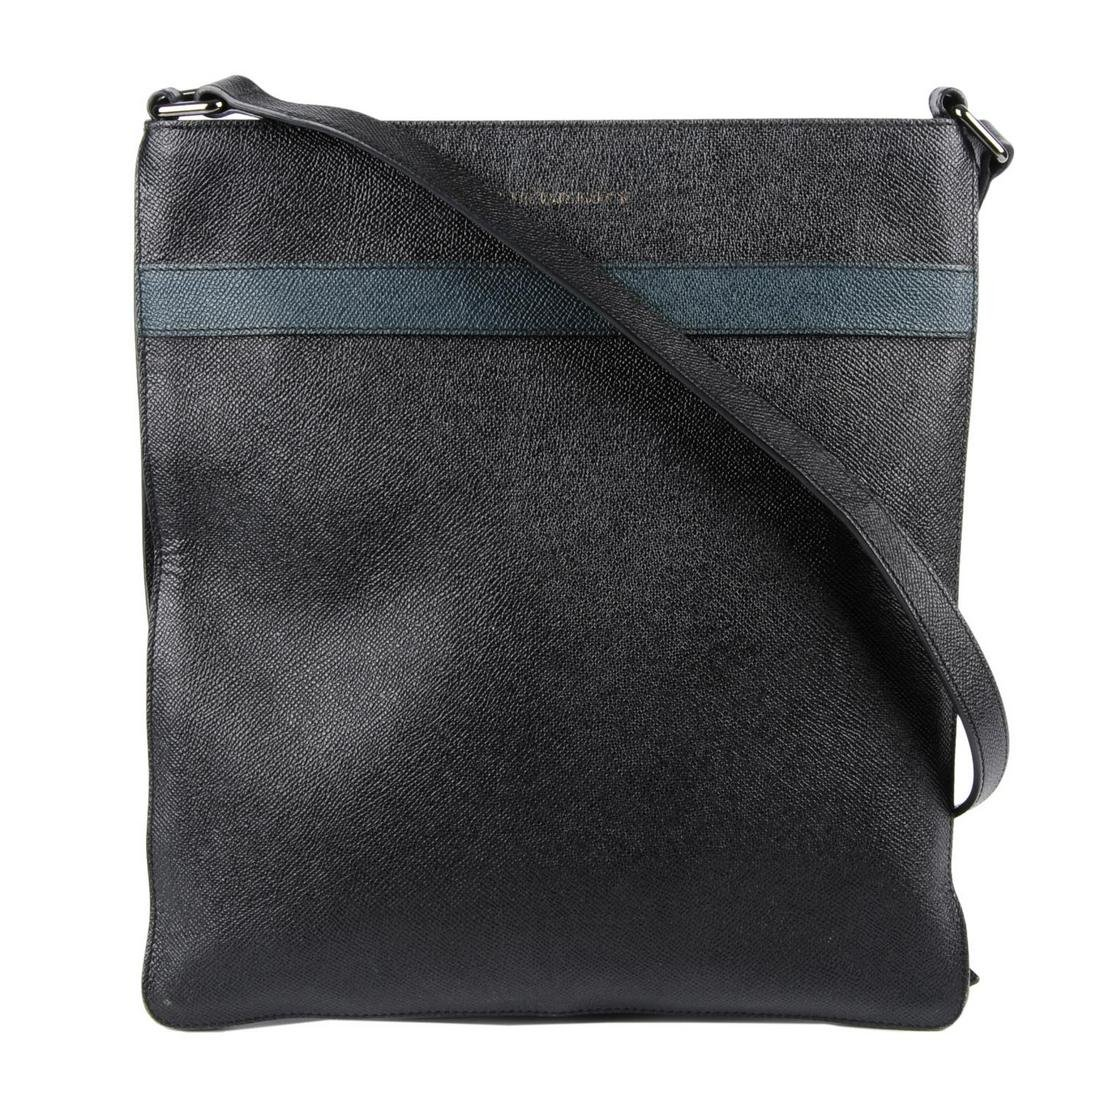 BURBERRY - a leather crossbody messenger bag. Featuring